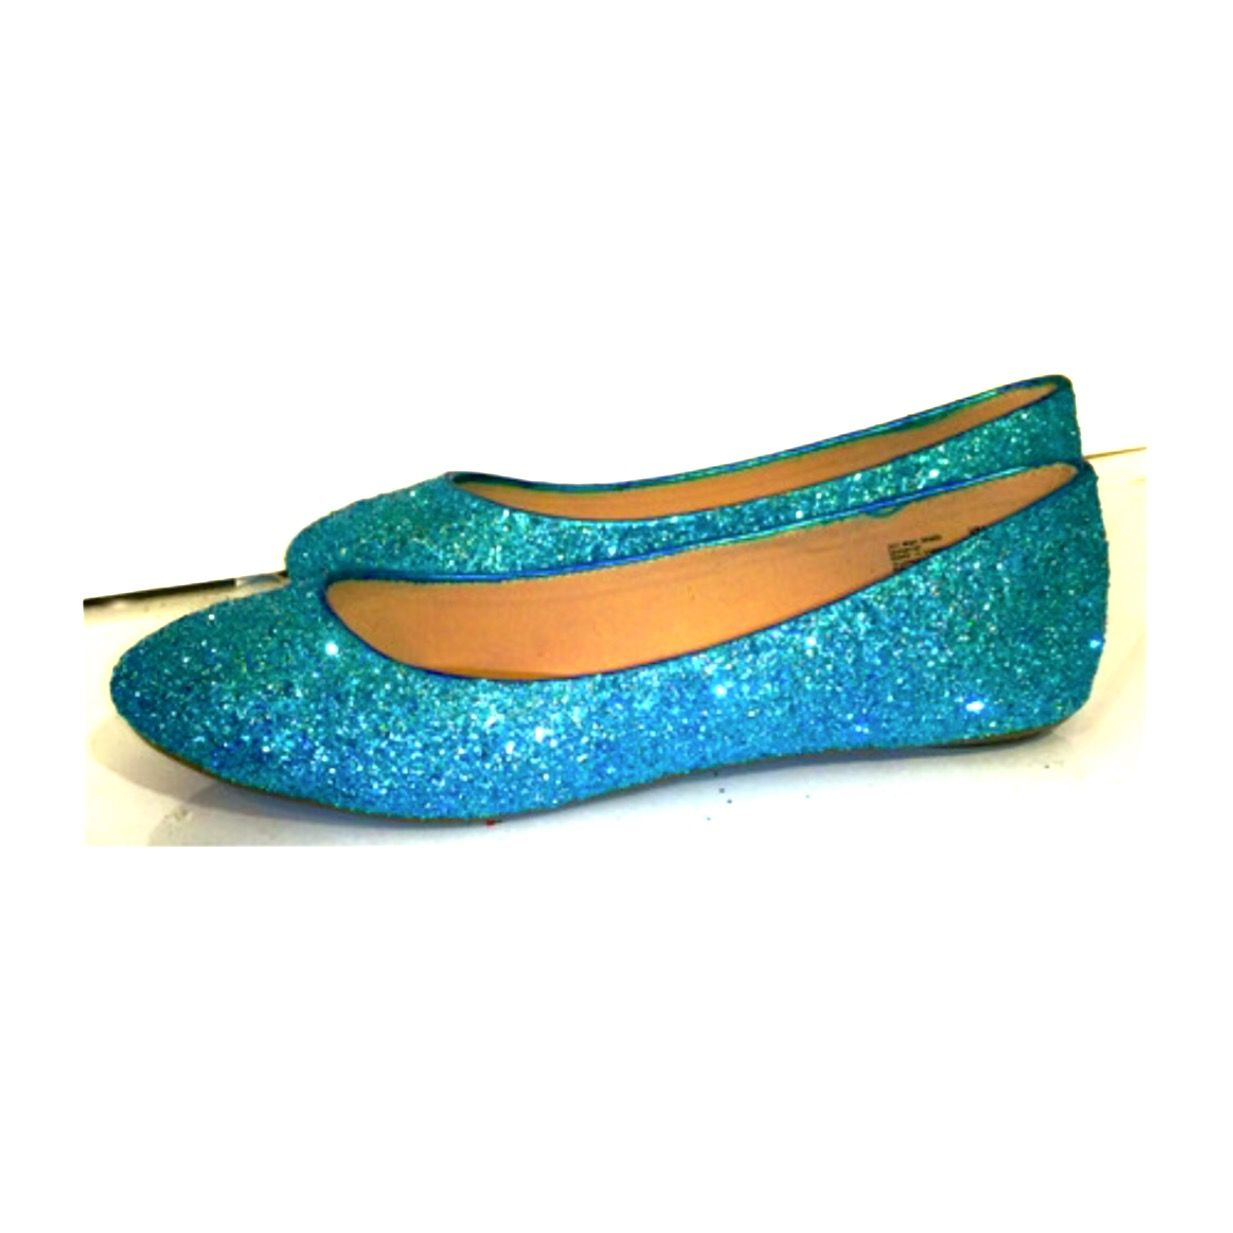 6a6e6c56e2ce SPARKLY TURQUOISE BLUE GLITTER BALLET FLATS WEDDING BRIDE PROM SHOES ...